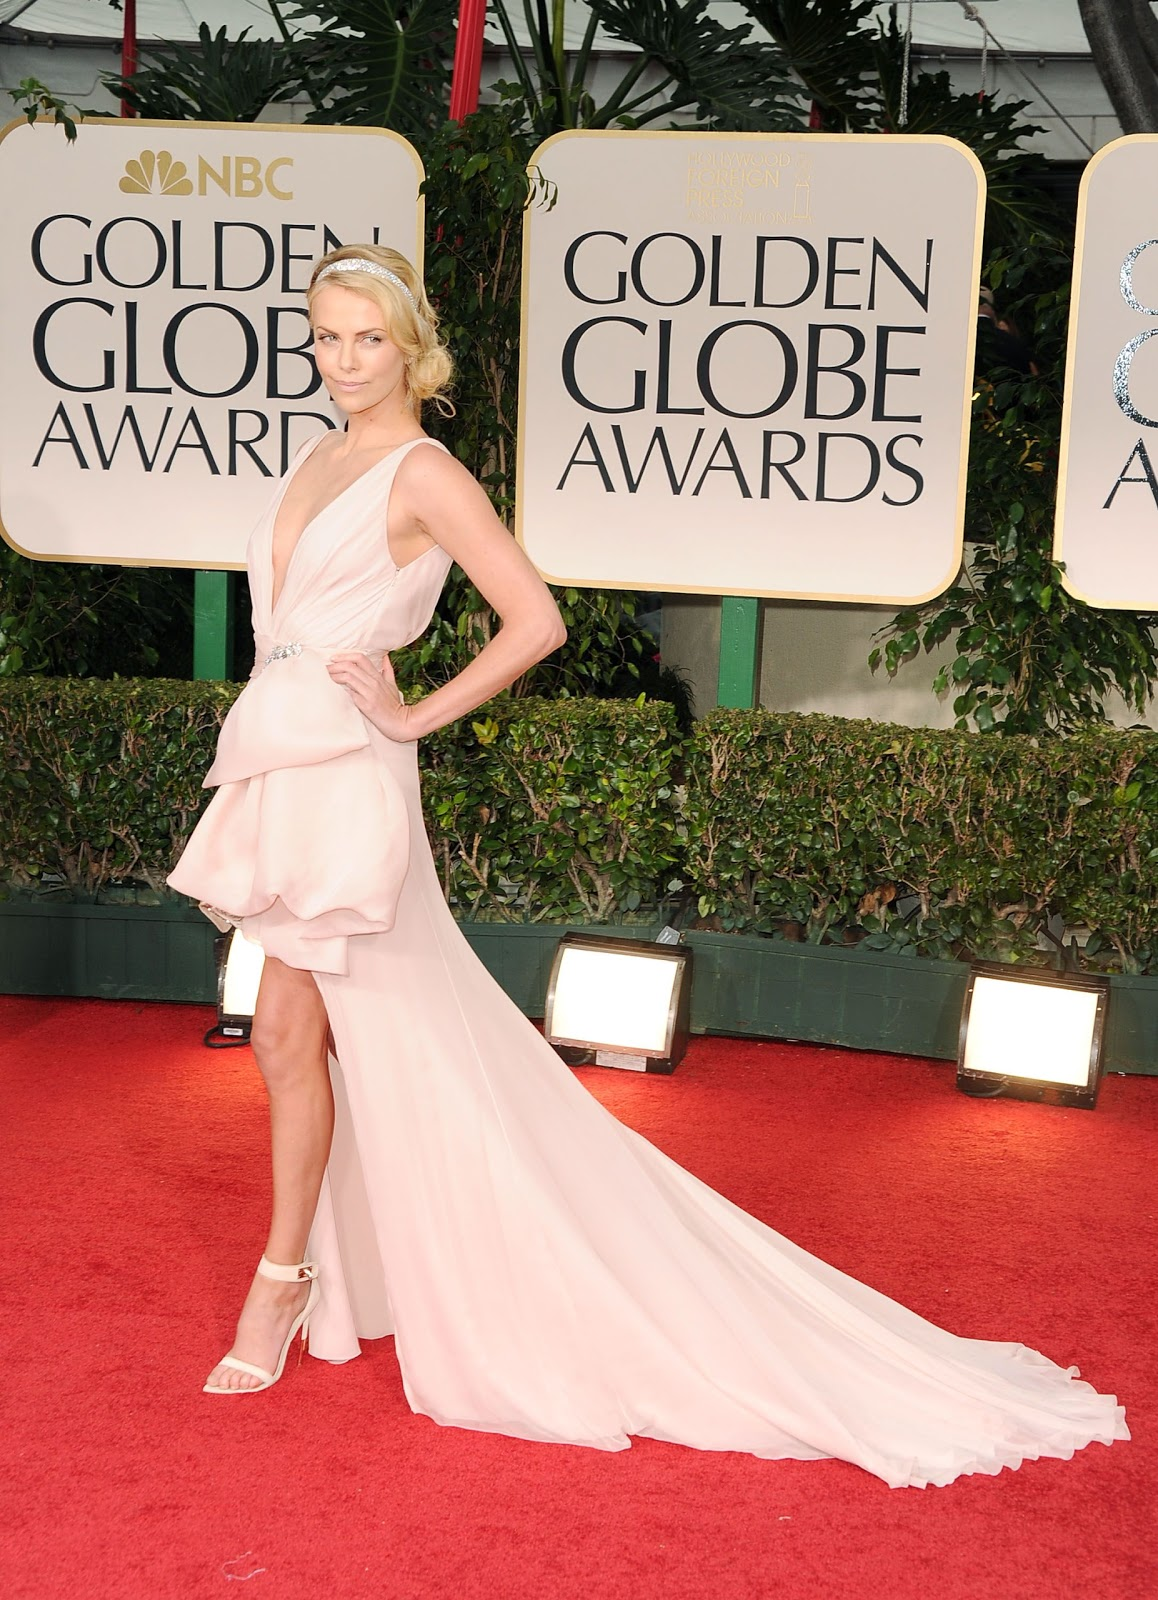 http://2.bp.blogspot.com/-wj2O13YBquc/TxSnTeKL3vI/AAAAAAAAAD0/PK4CiG4YFrs/s1600/charlize_theron_69th_annual_golden_globe_awards_in_beverly_hills_january_15_2012_GWezxNd.jpg